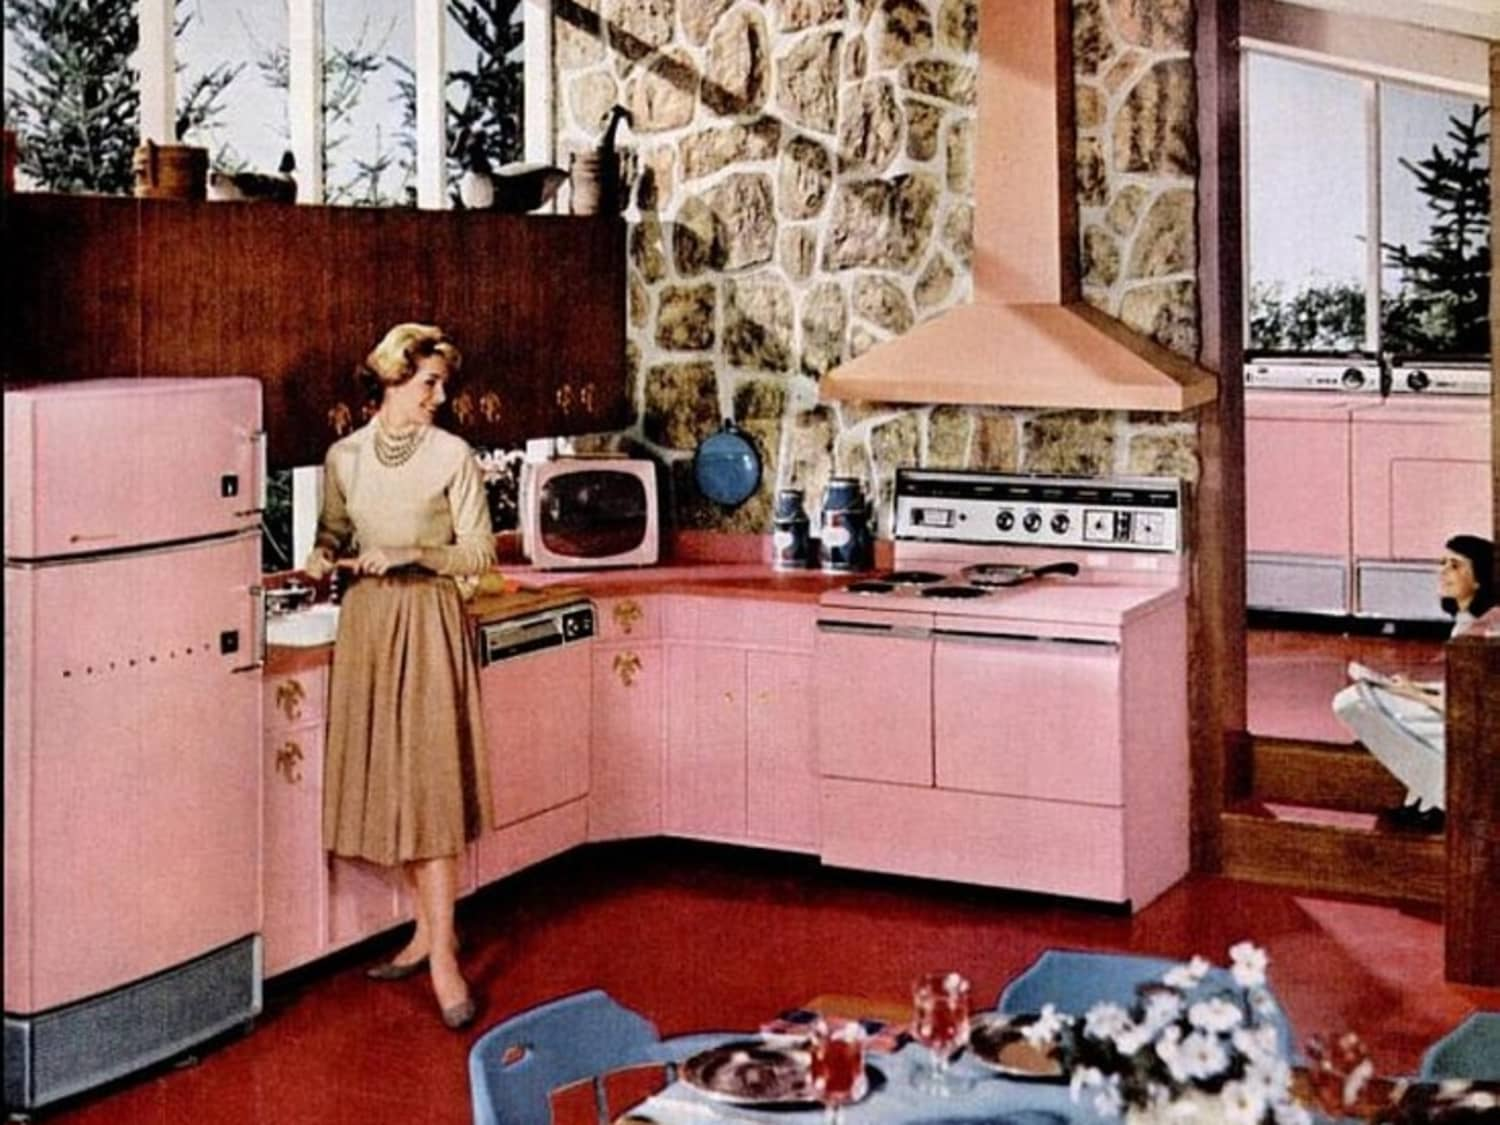 Brief History Of The Kitchen From The 1950s To 1960s